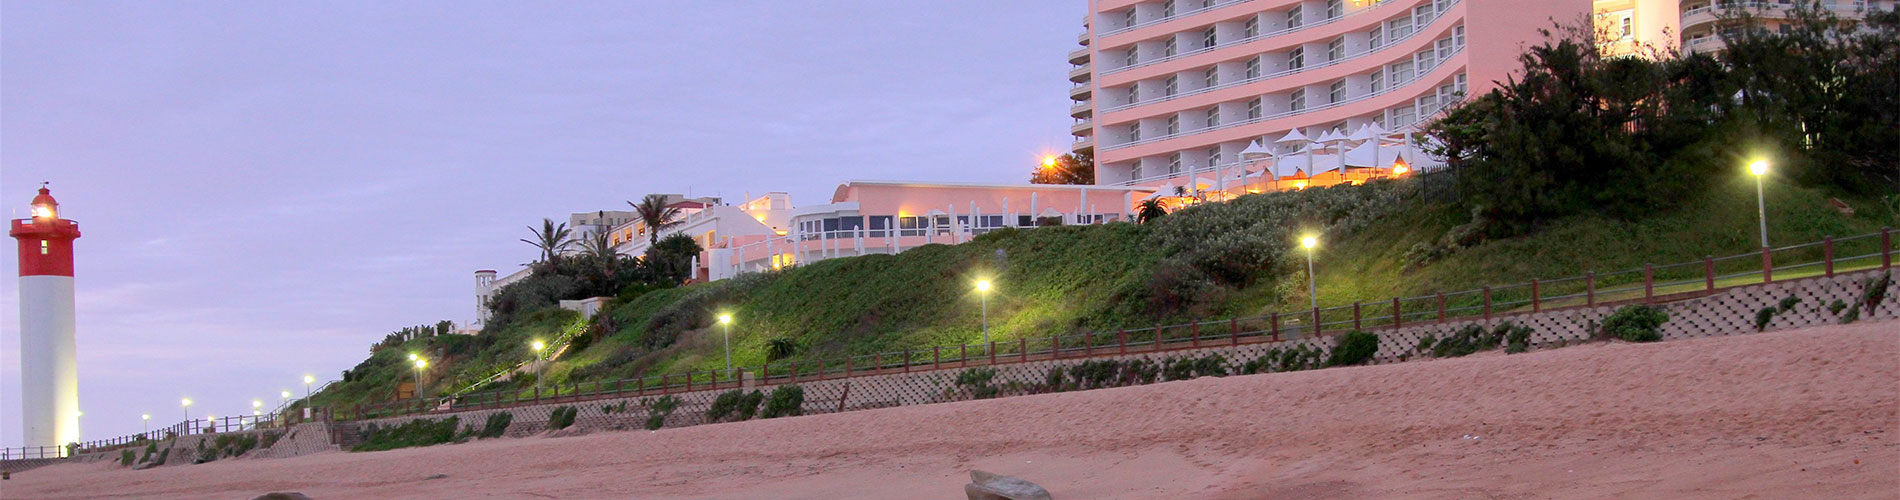 umhlanga beach holiday rental 8